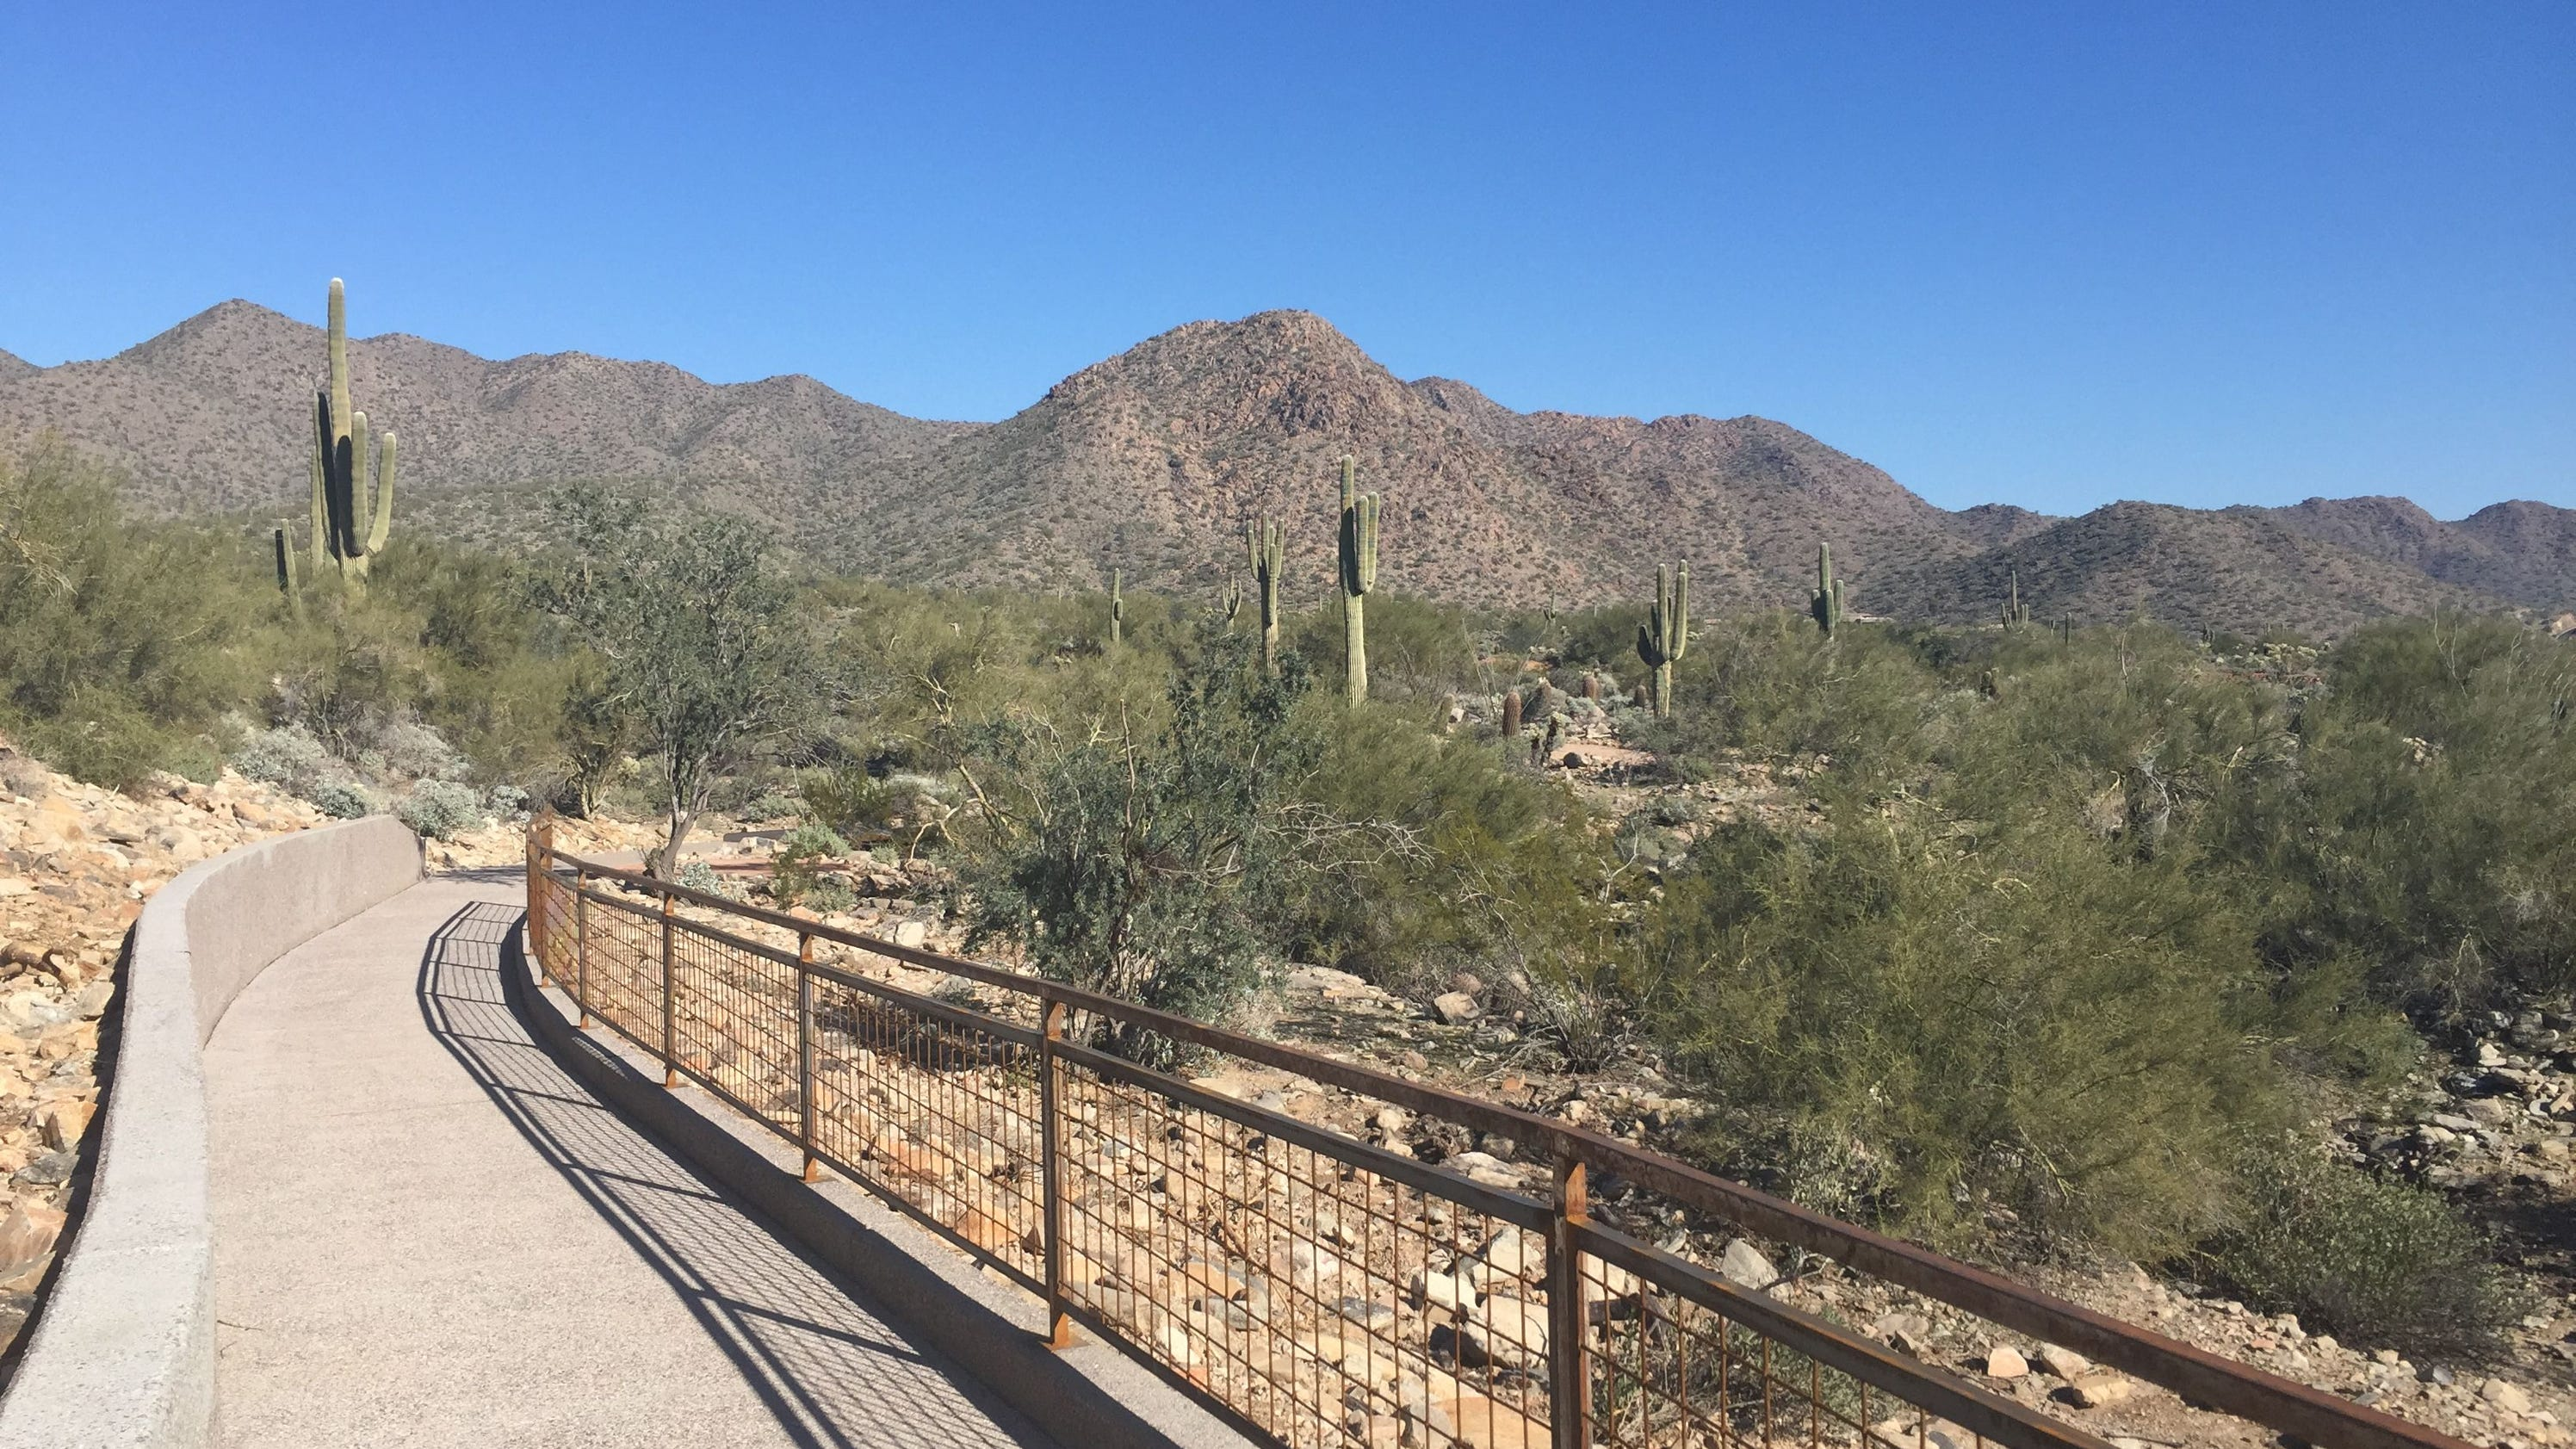 Kovach trail opens at lost dog wash trailhead in scottsdale kovach trail opens at lost dog wash trailhead in scottsdale solutioingenieria Choice Image